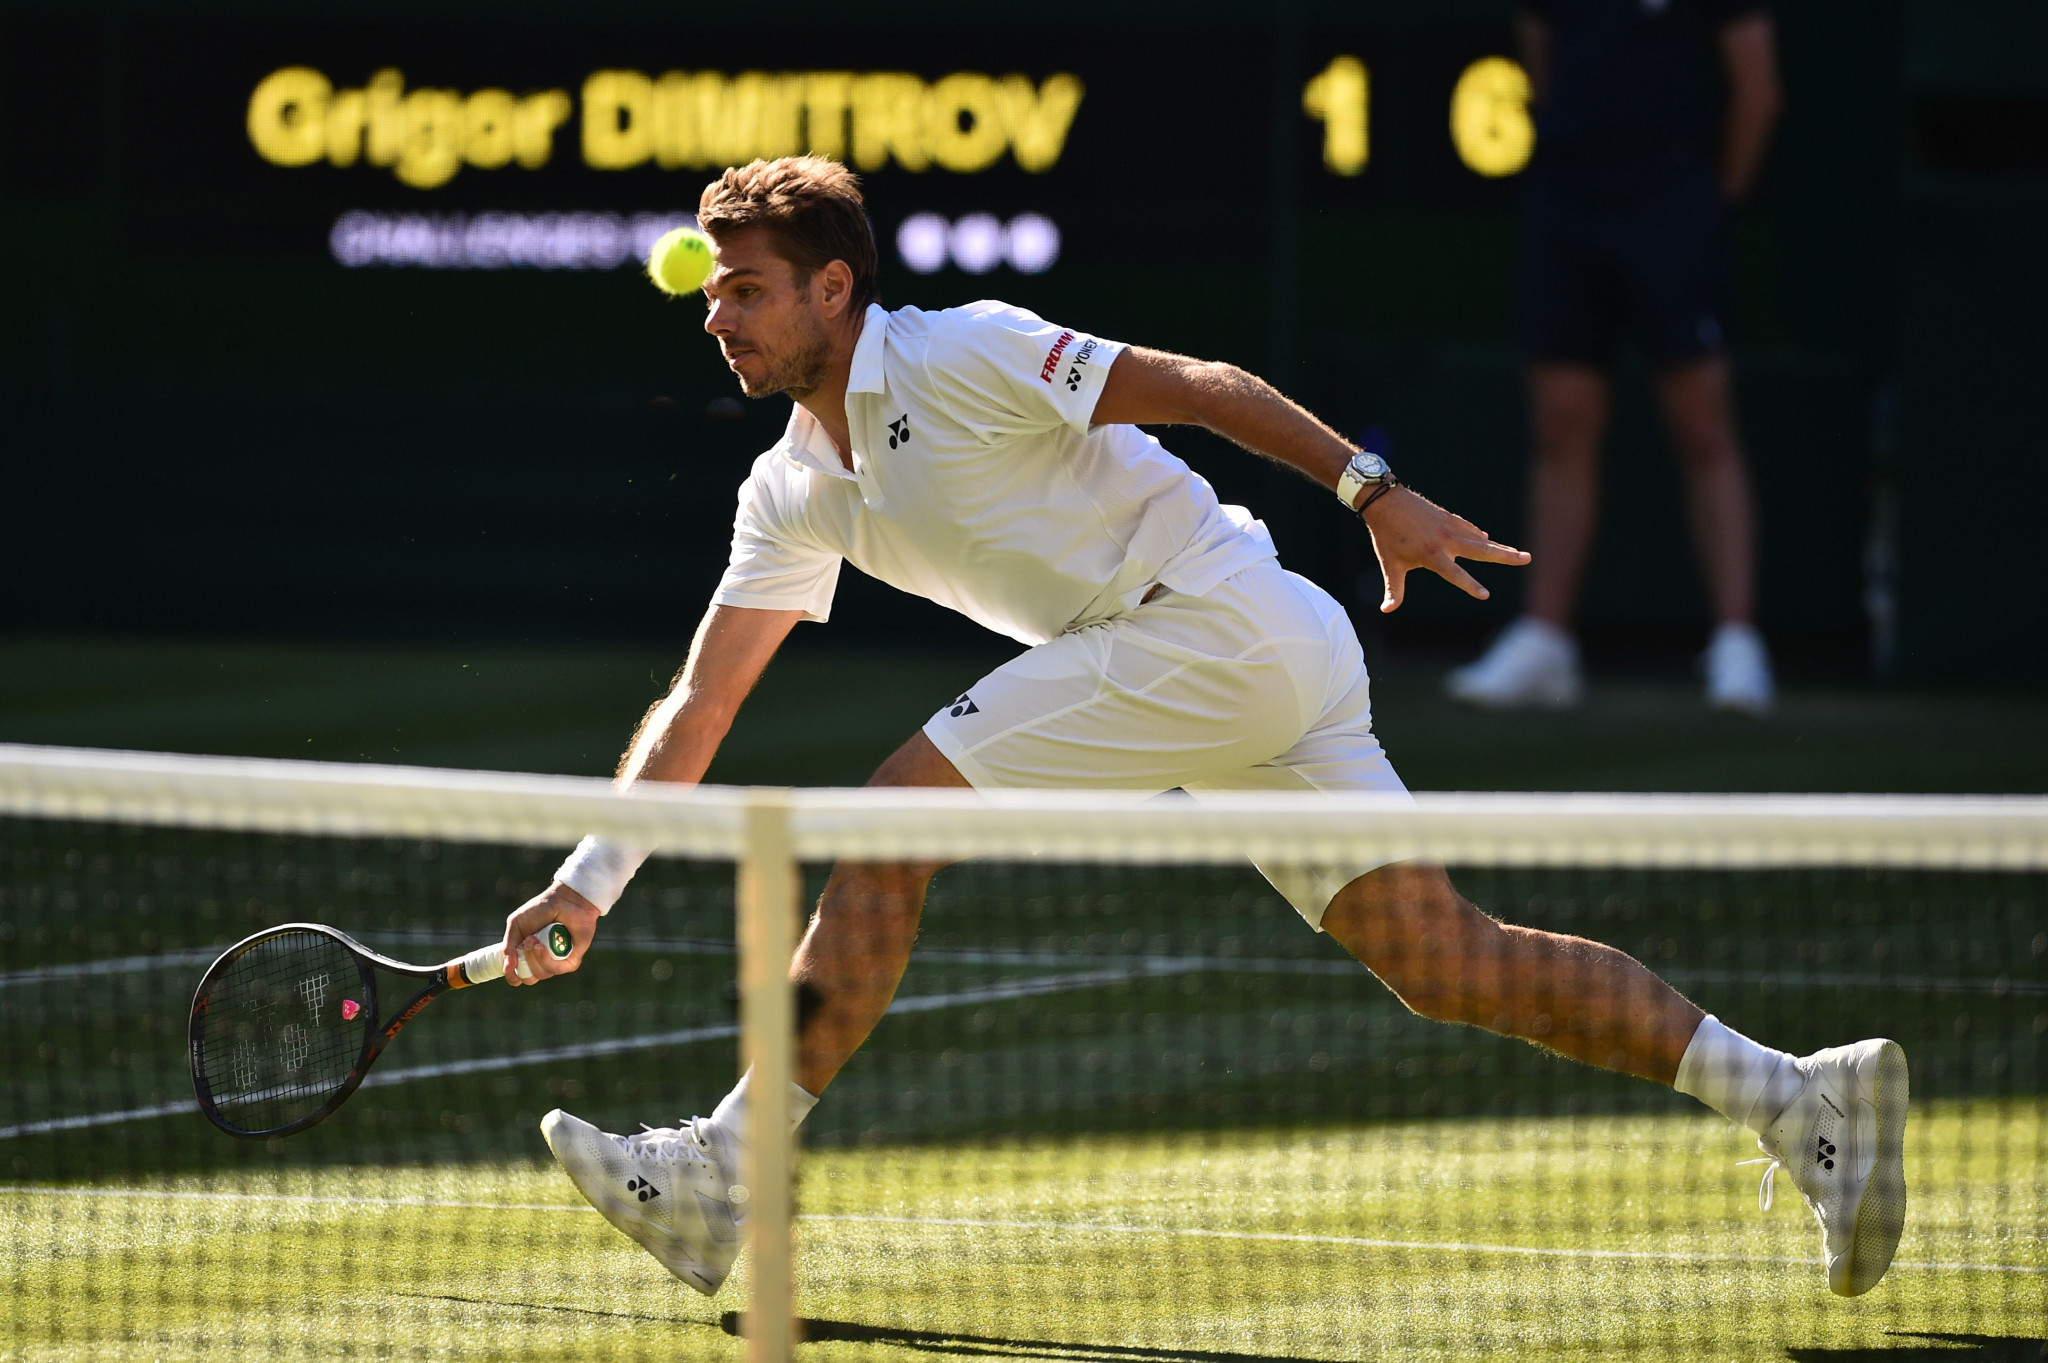 Switzerland's Stan Wawrinka came from a set down to beat Bulgaria's sixth seed Grigor Dimitrov in the game of the day as Wimbledon 2018 begun ©Getty Images